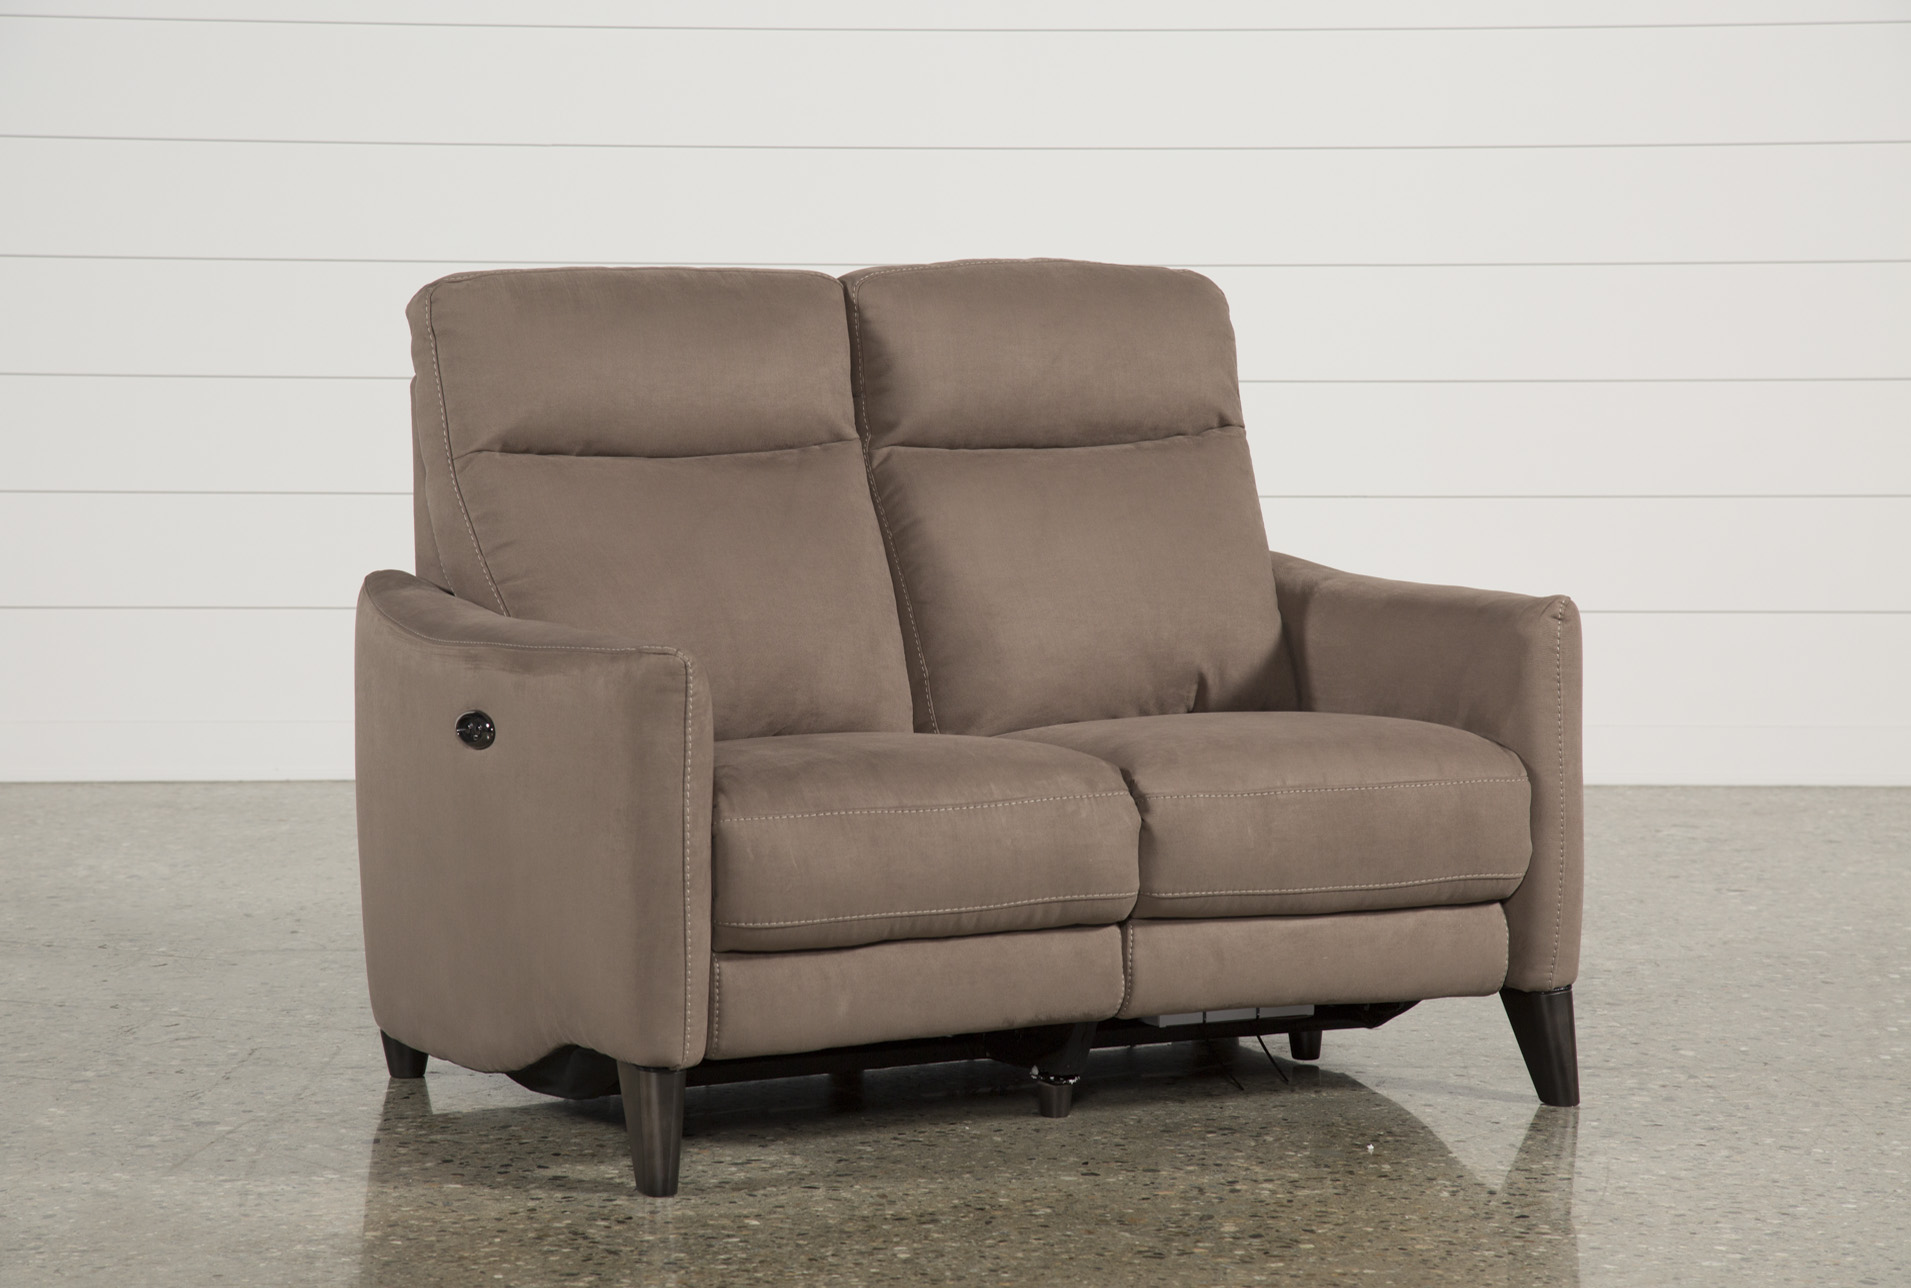 Melina Cocoa Power Reclining Loveseat W/Usb (Qty: 1) has been successfully  added to your Cart.